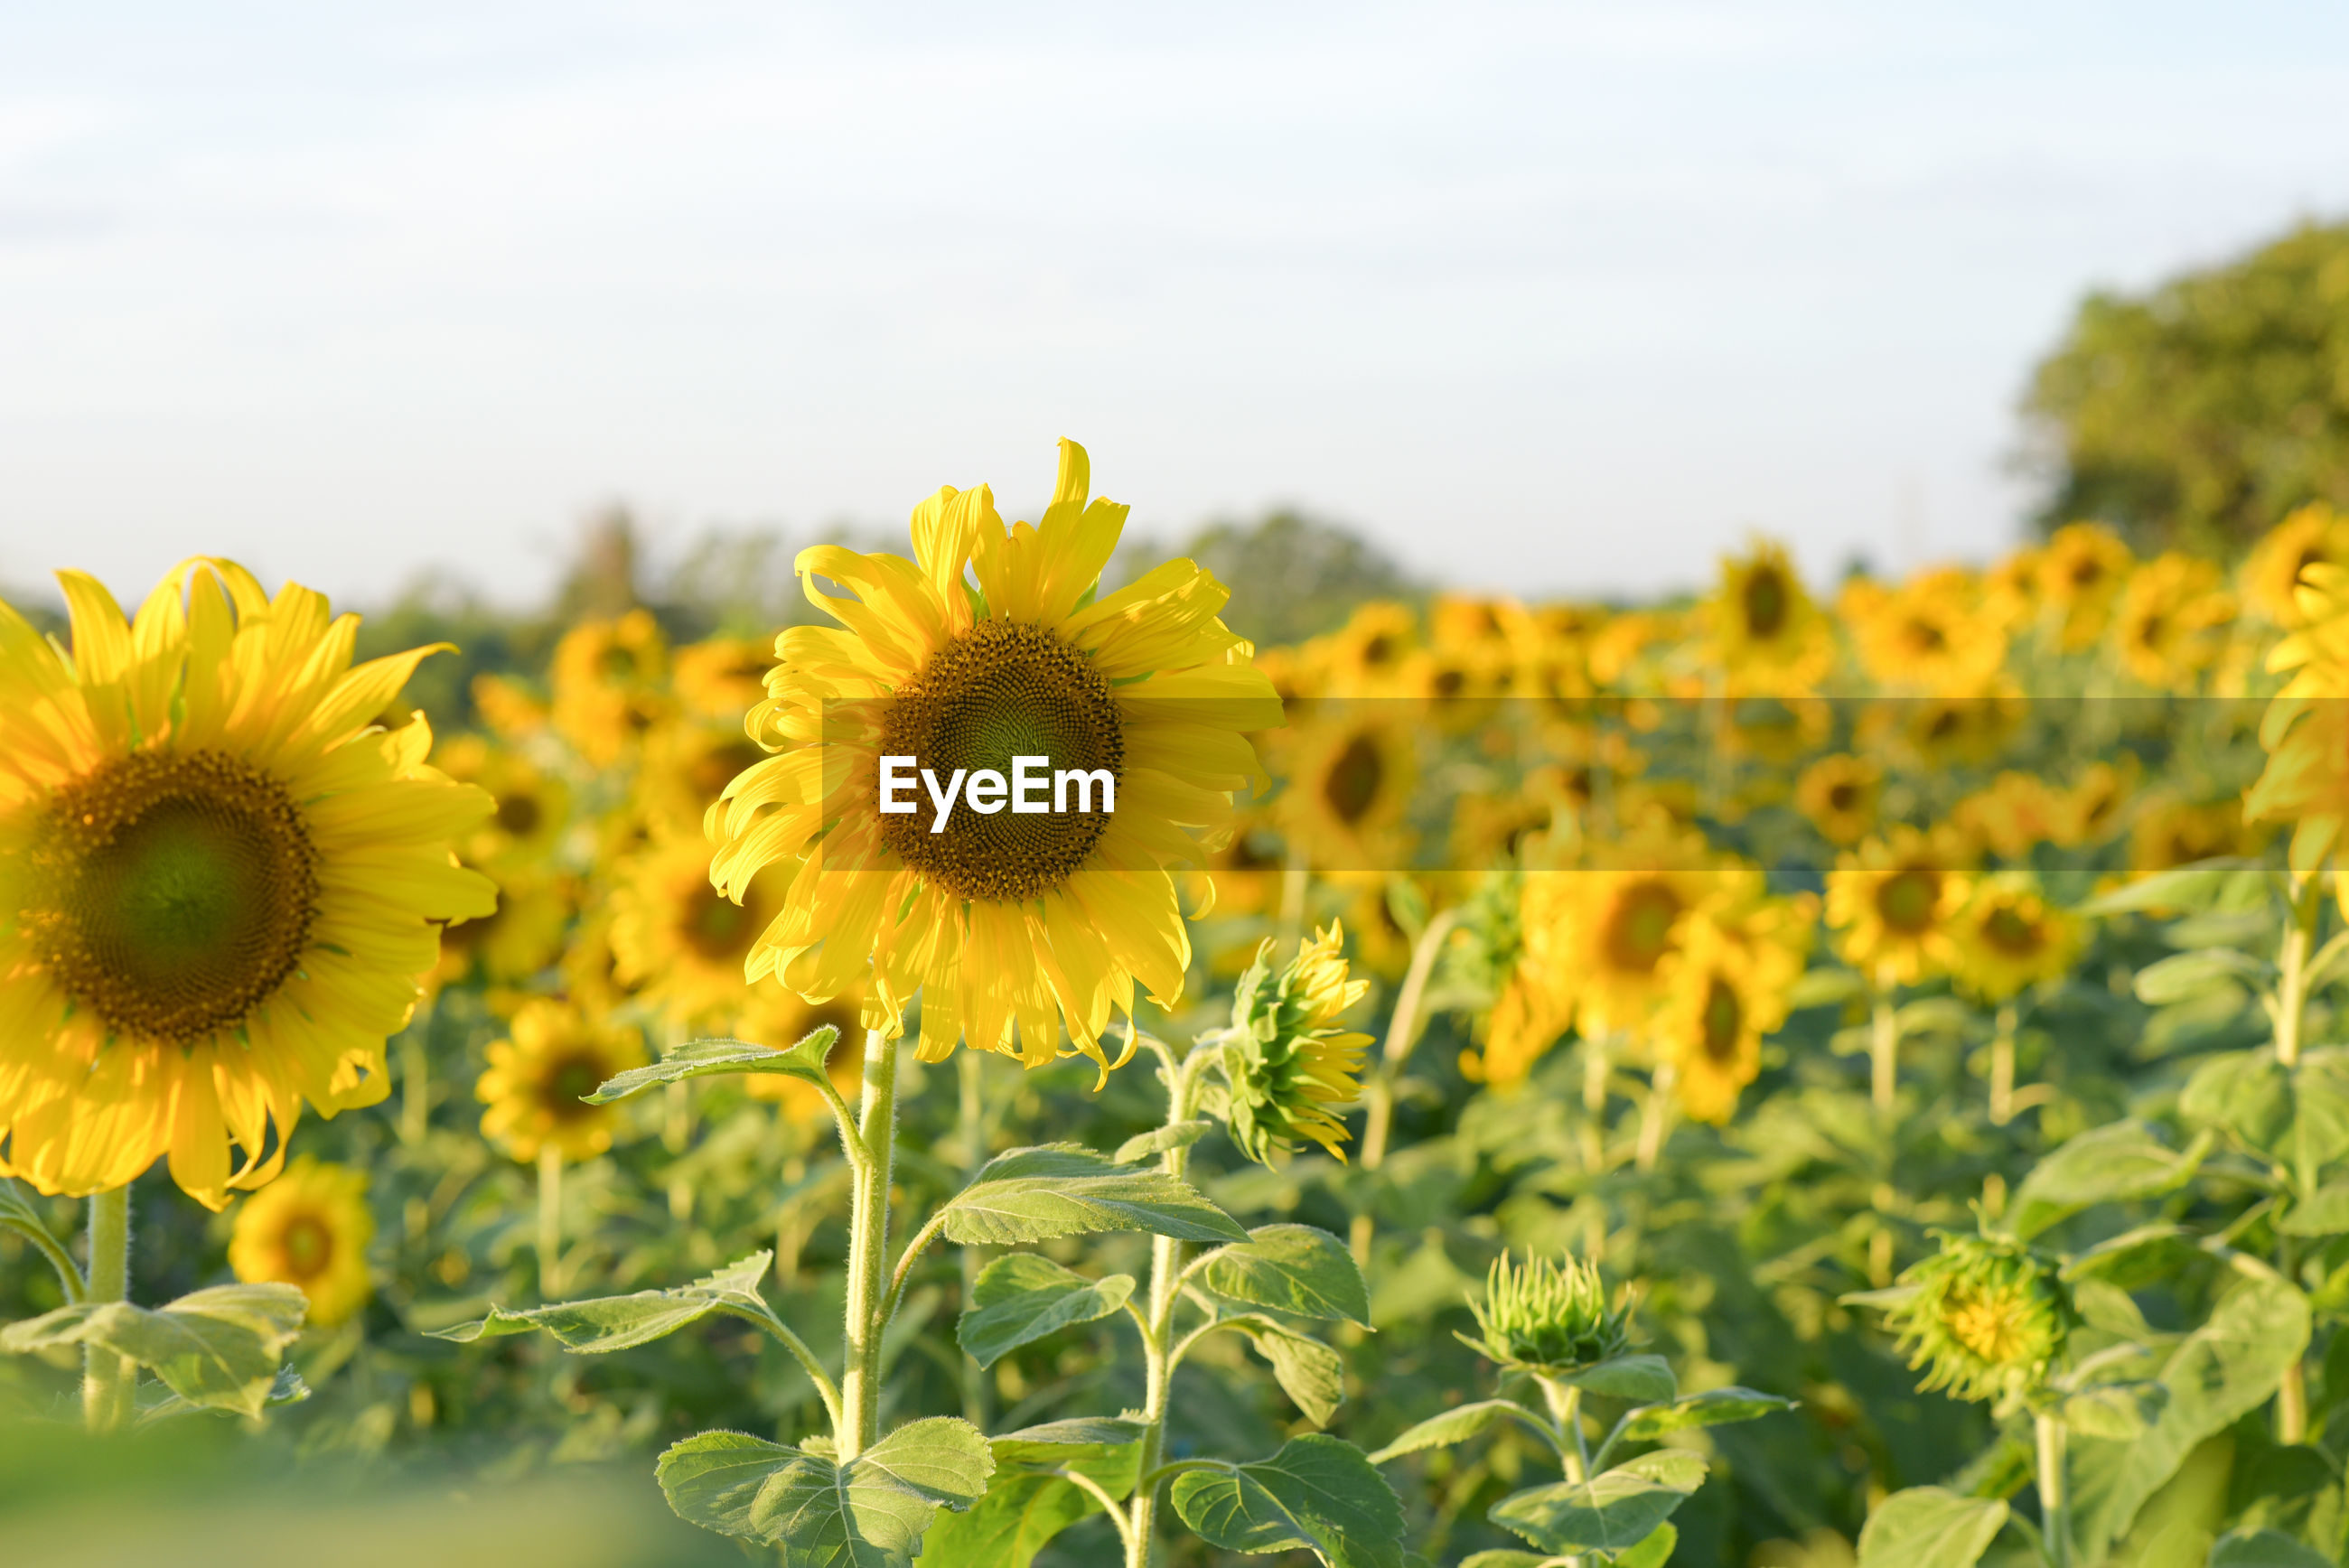 CLOSE-UP OF YELLOW SUNFLOWER ON FIELD